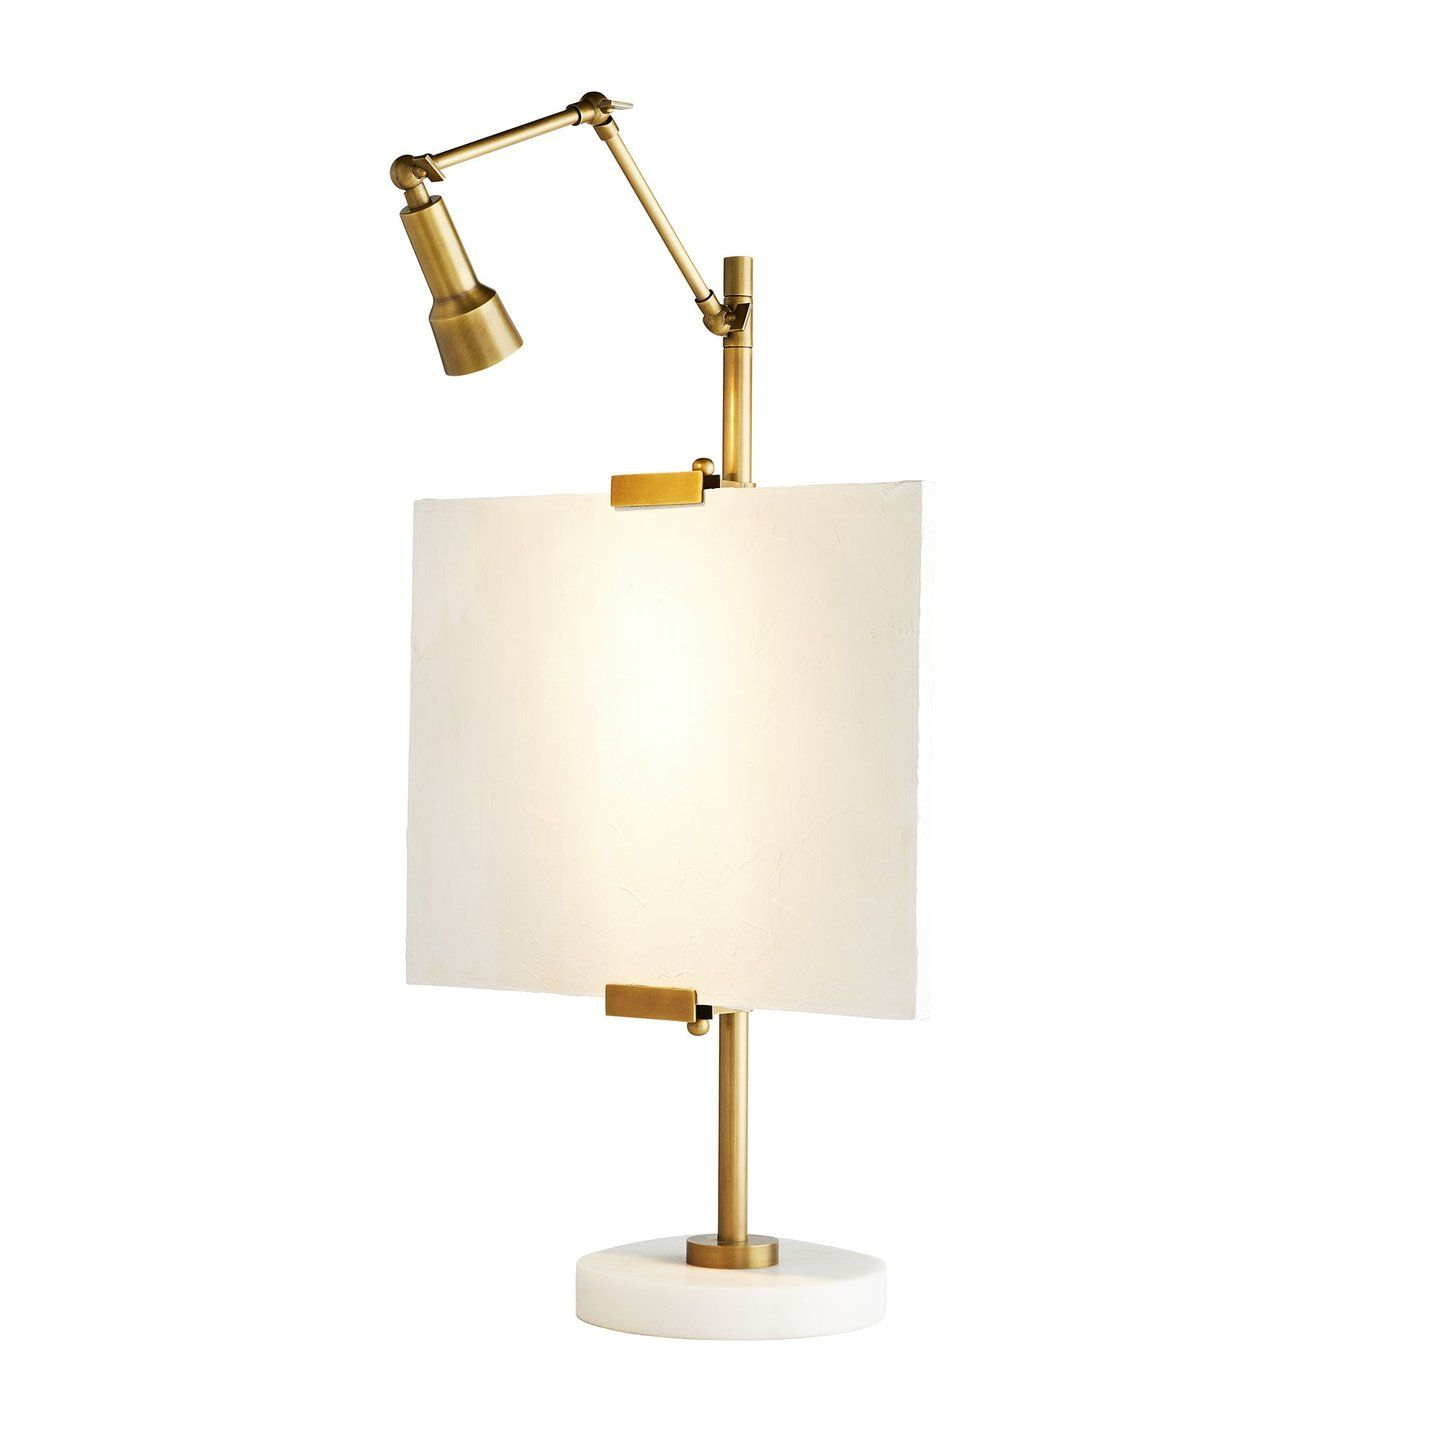 Pin On Lighting #unique #table #lamps #for #living #room